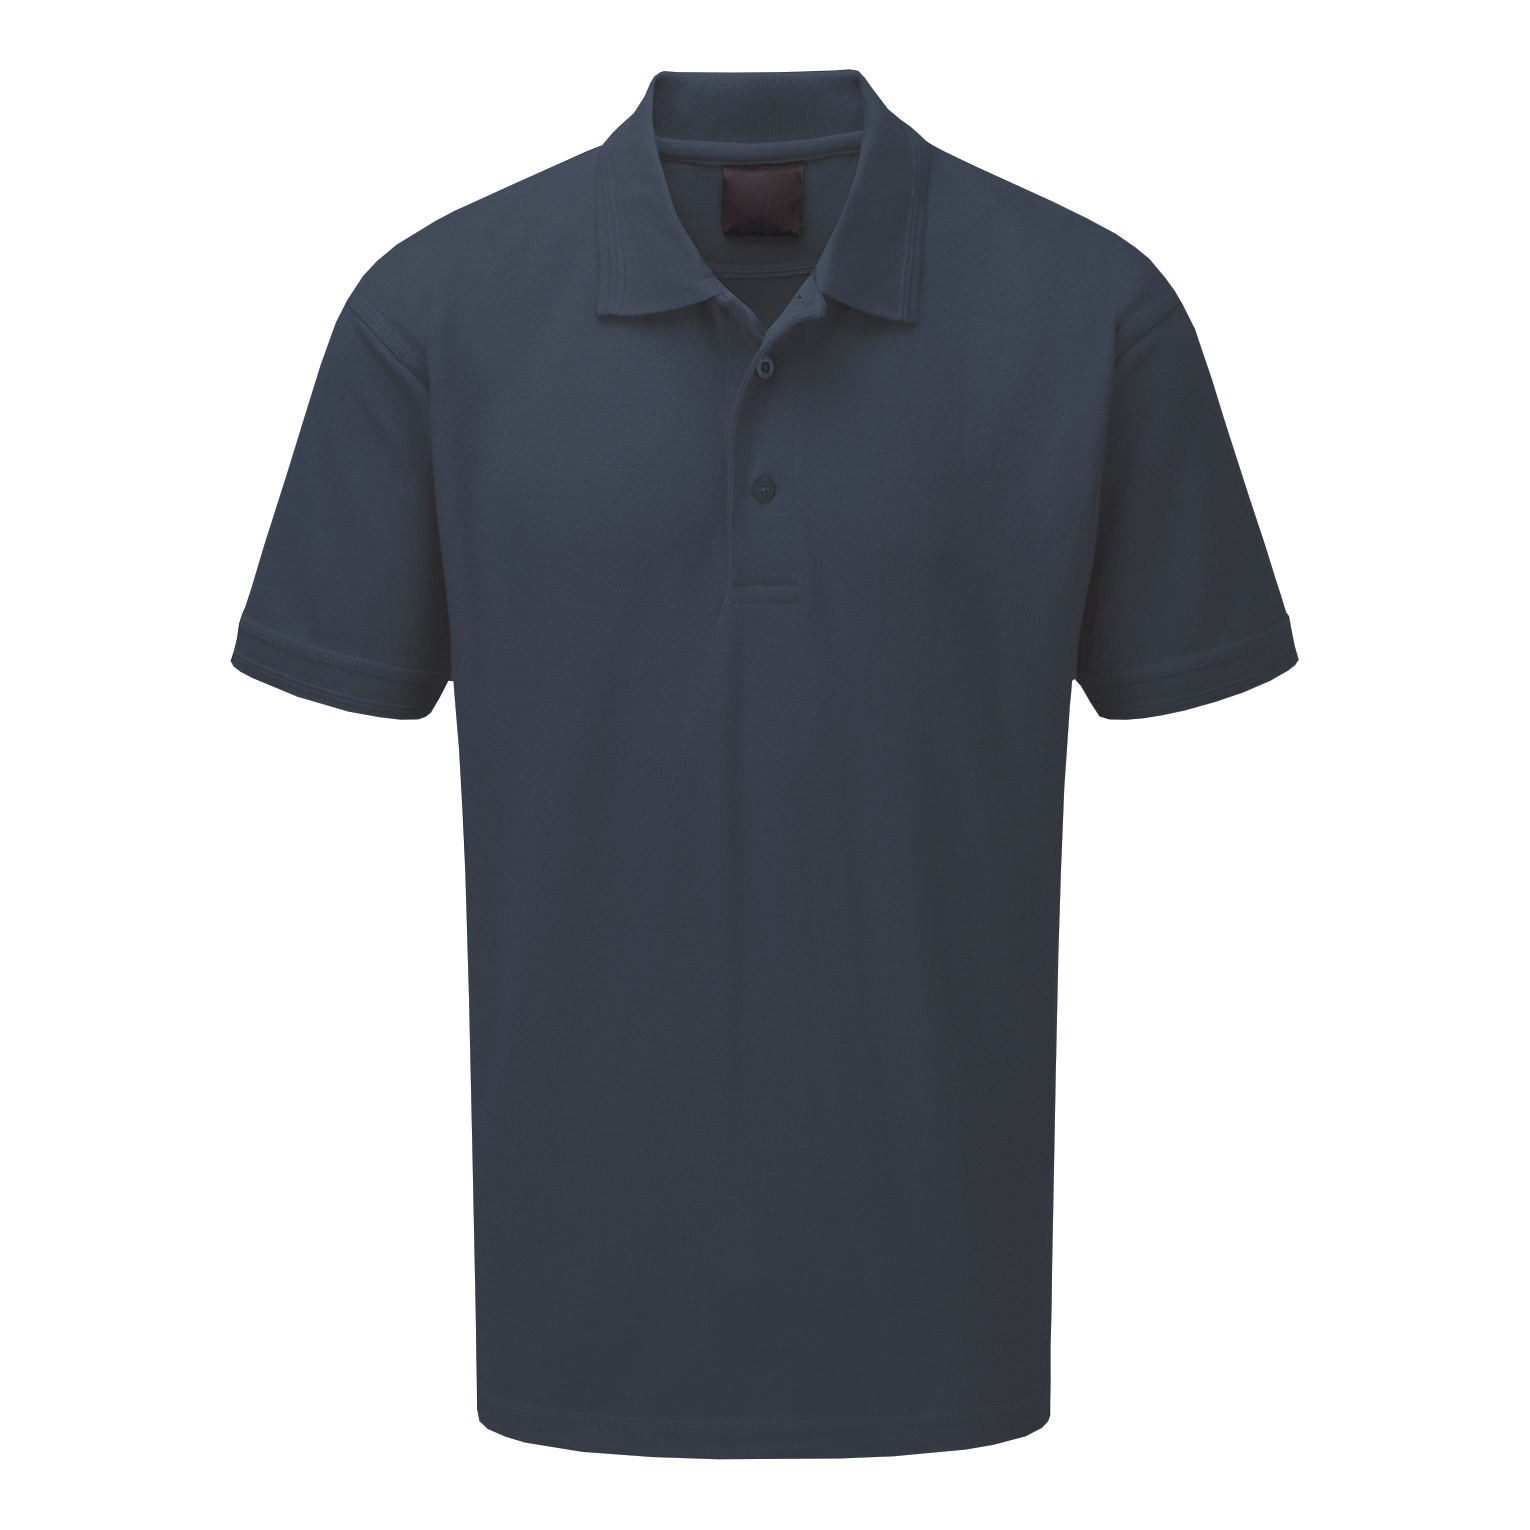 Premium Polo Shirt Triple Button 220gsm Polycotton 4XL Graphite Ref CLPKSGY4XL *Approx 3 Day Leadtime*